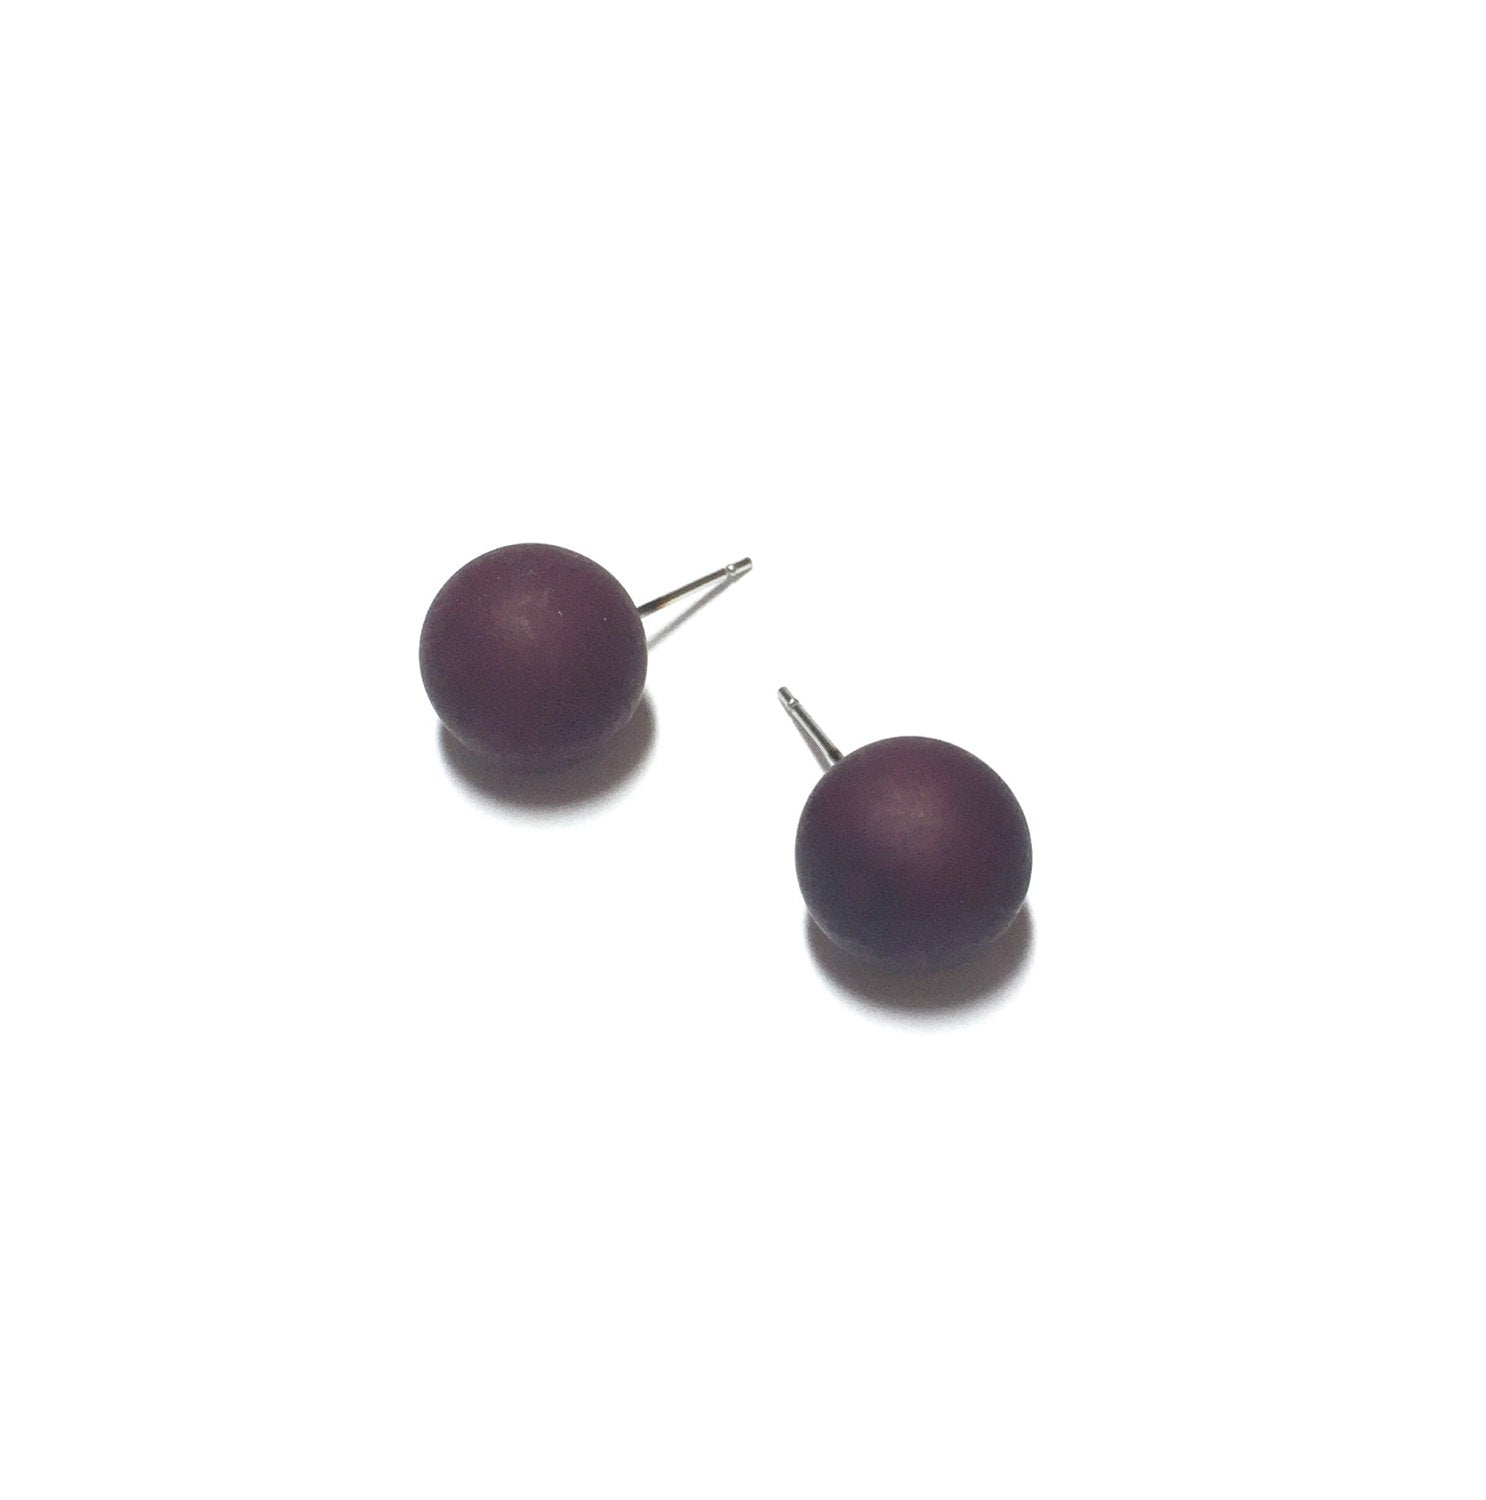 eggplant stud earrings